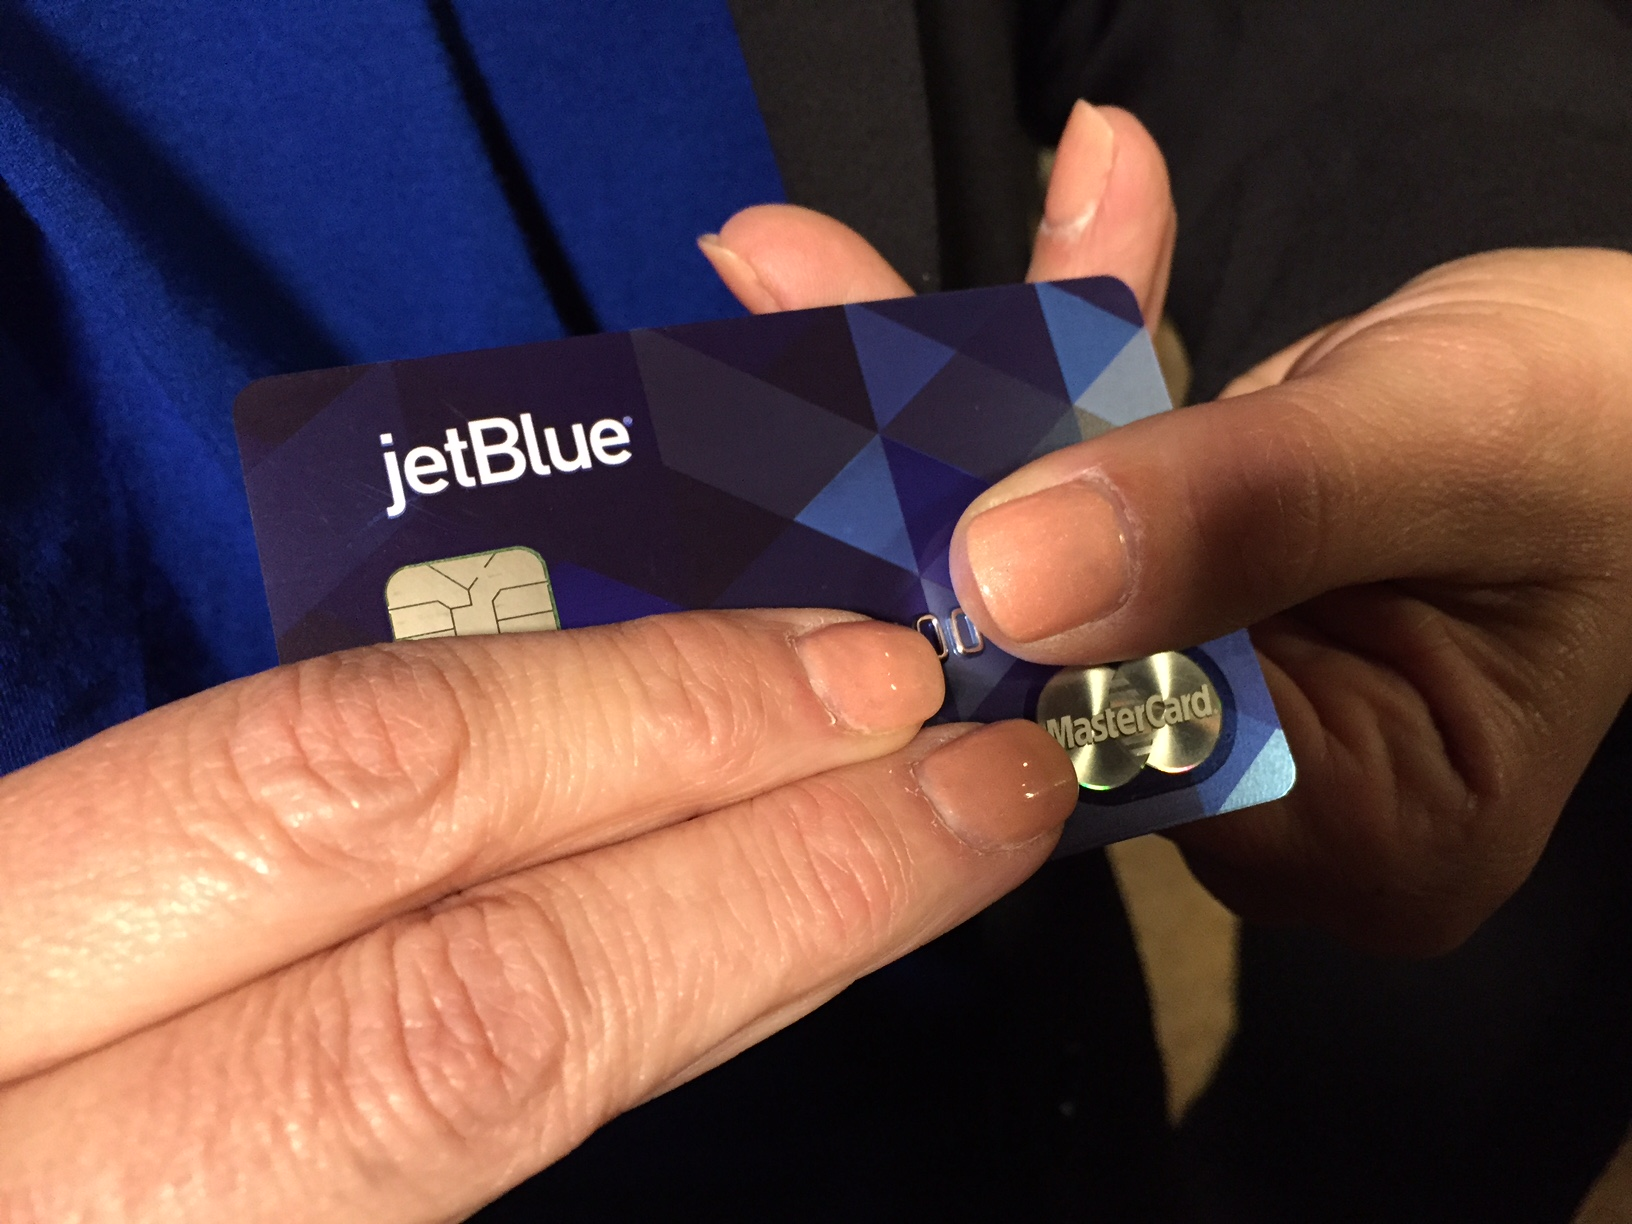 New JetBlue Credit Cards Offer More Miles | MyBankTracker